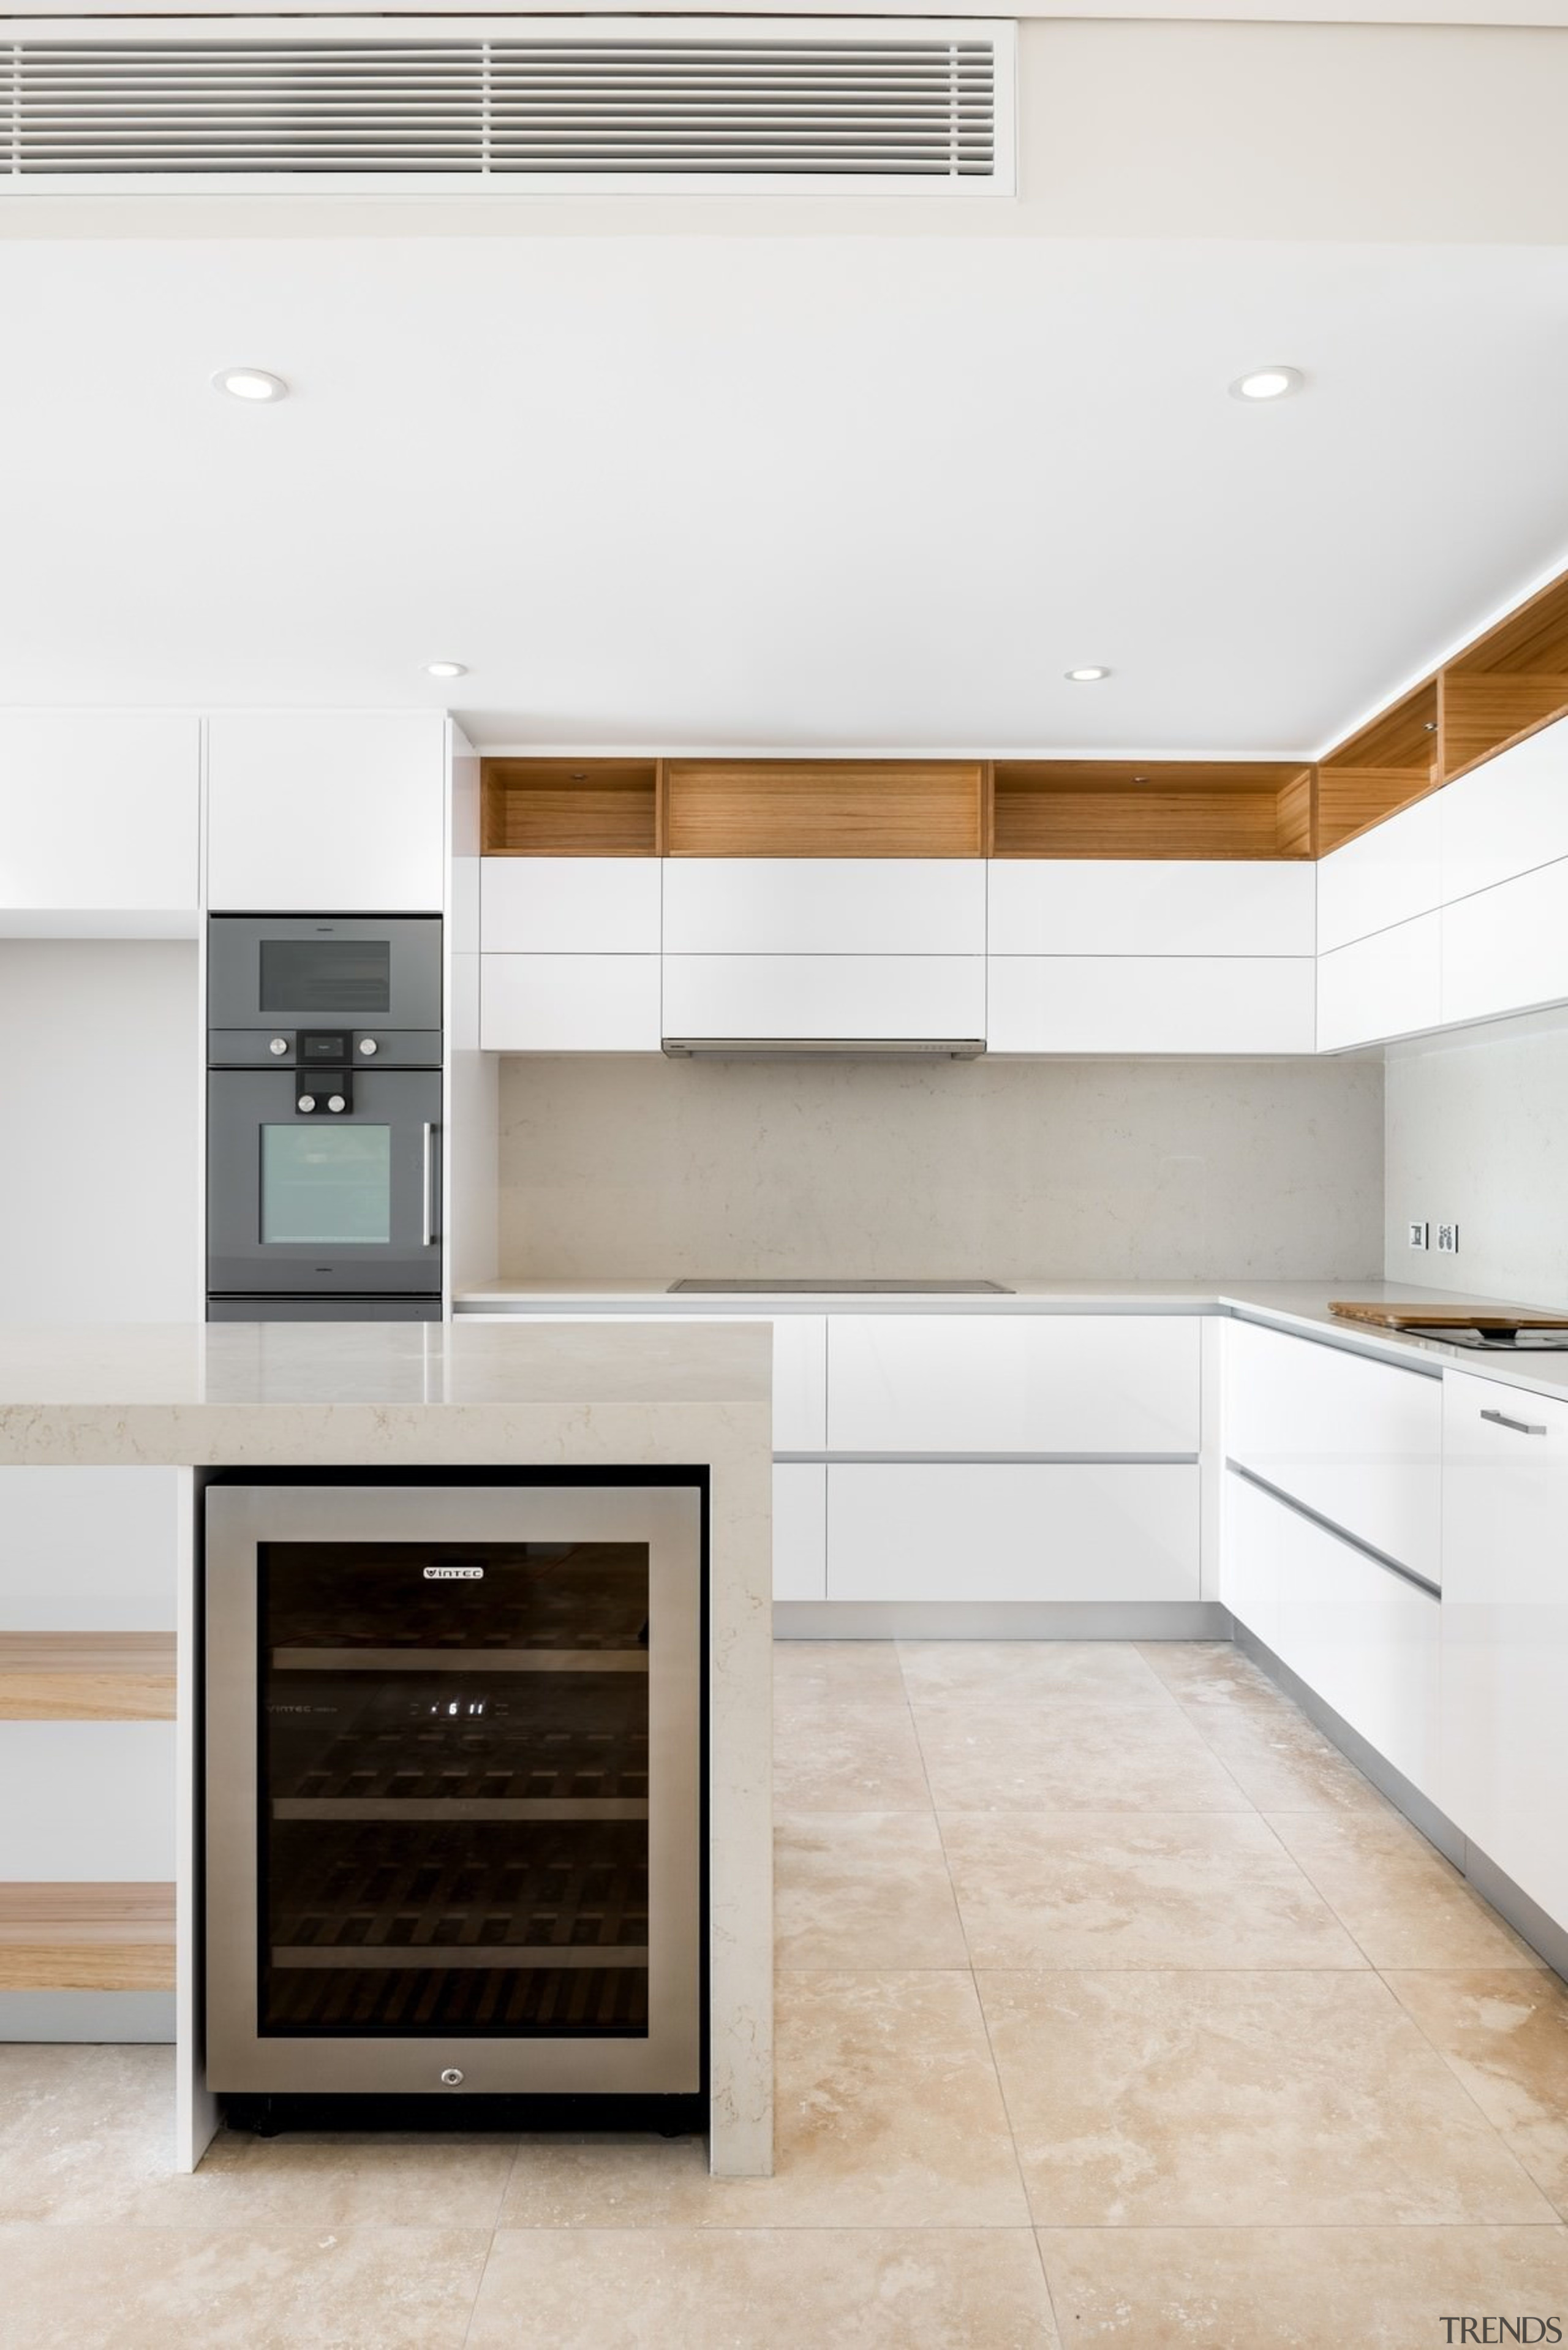 Storage runs along the top of this kitchen, cabinetry, countertop, cuisine classique, floor, home appliance, interior design, kitchen, kitchen appliance, kitchen stove, major appliance, product design, room, wood flooring, white